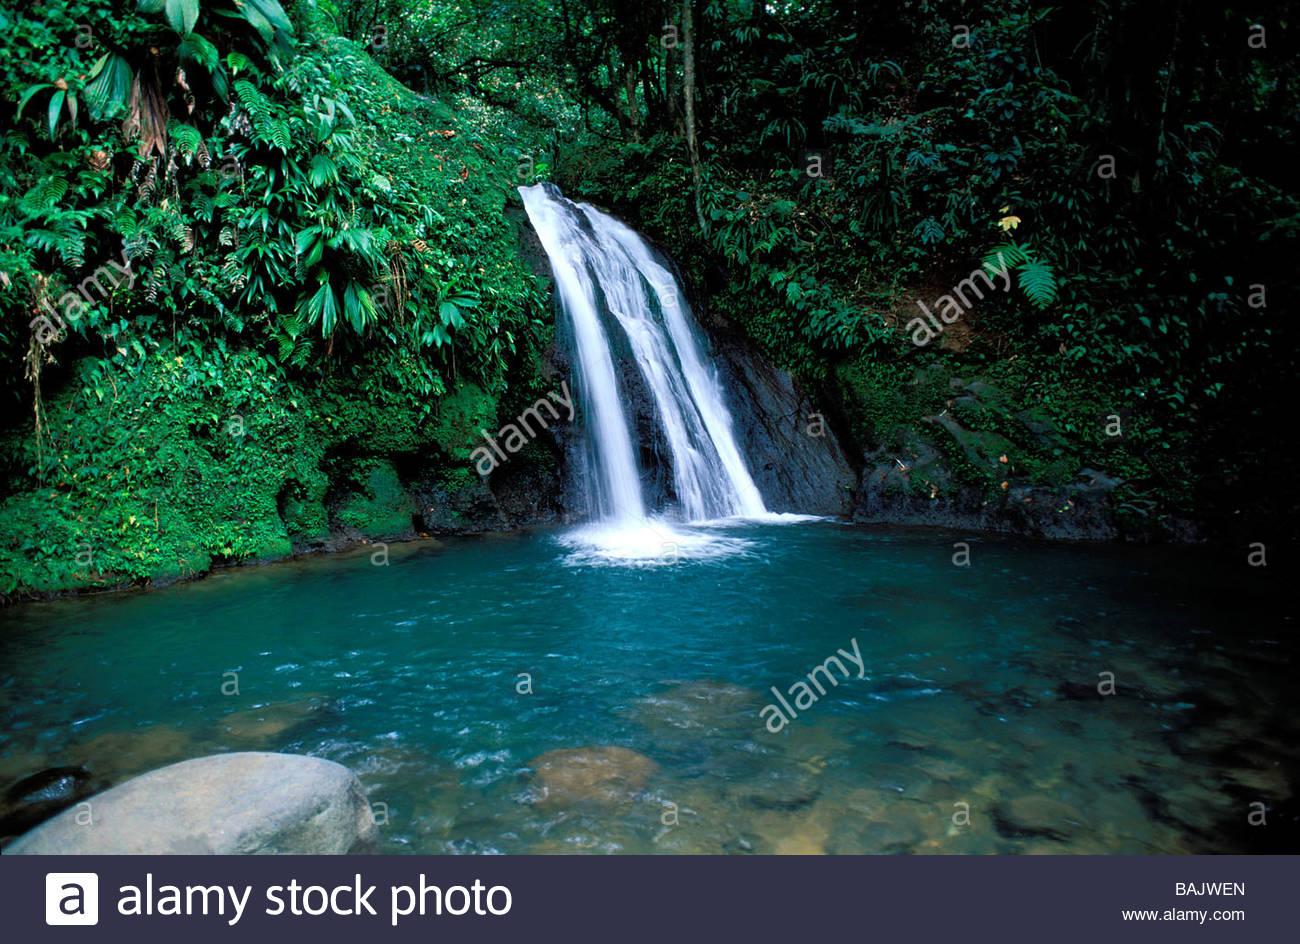 Valombreuse Floral Park Basse-Terre Island, France, Guadeloupe (French West Indies), Basse Terre, Petit Bourg ...